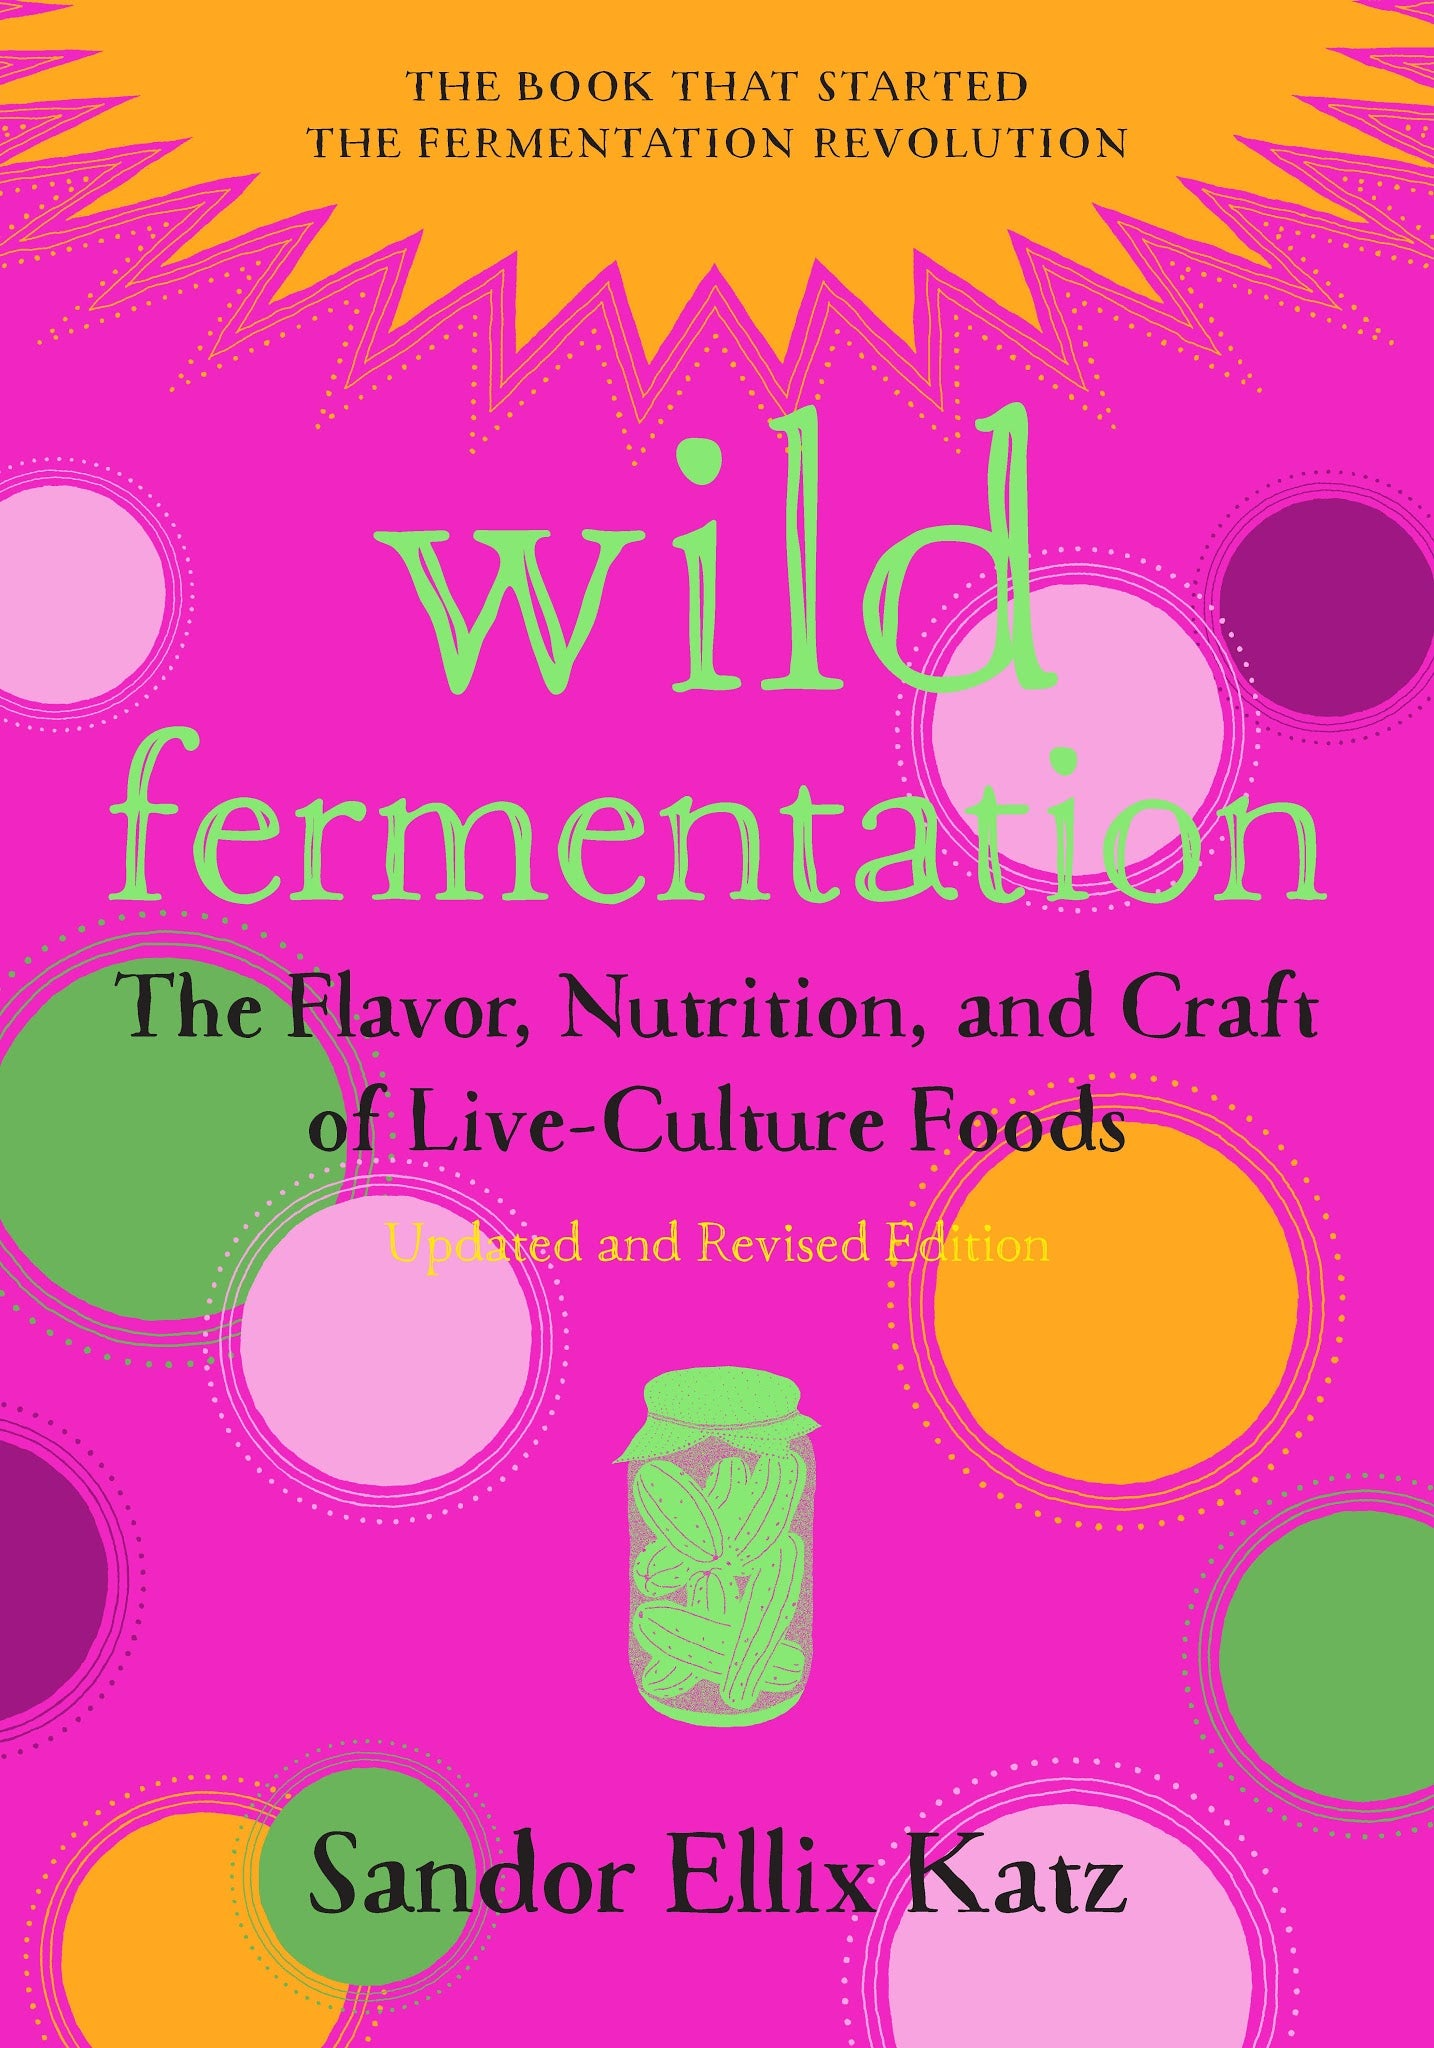 The Art of Fermentation - With Sandor Katz